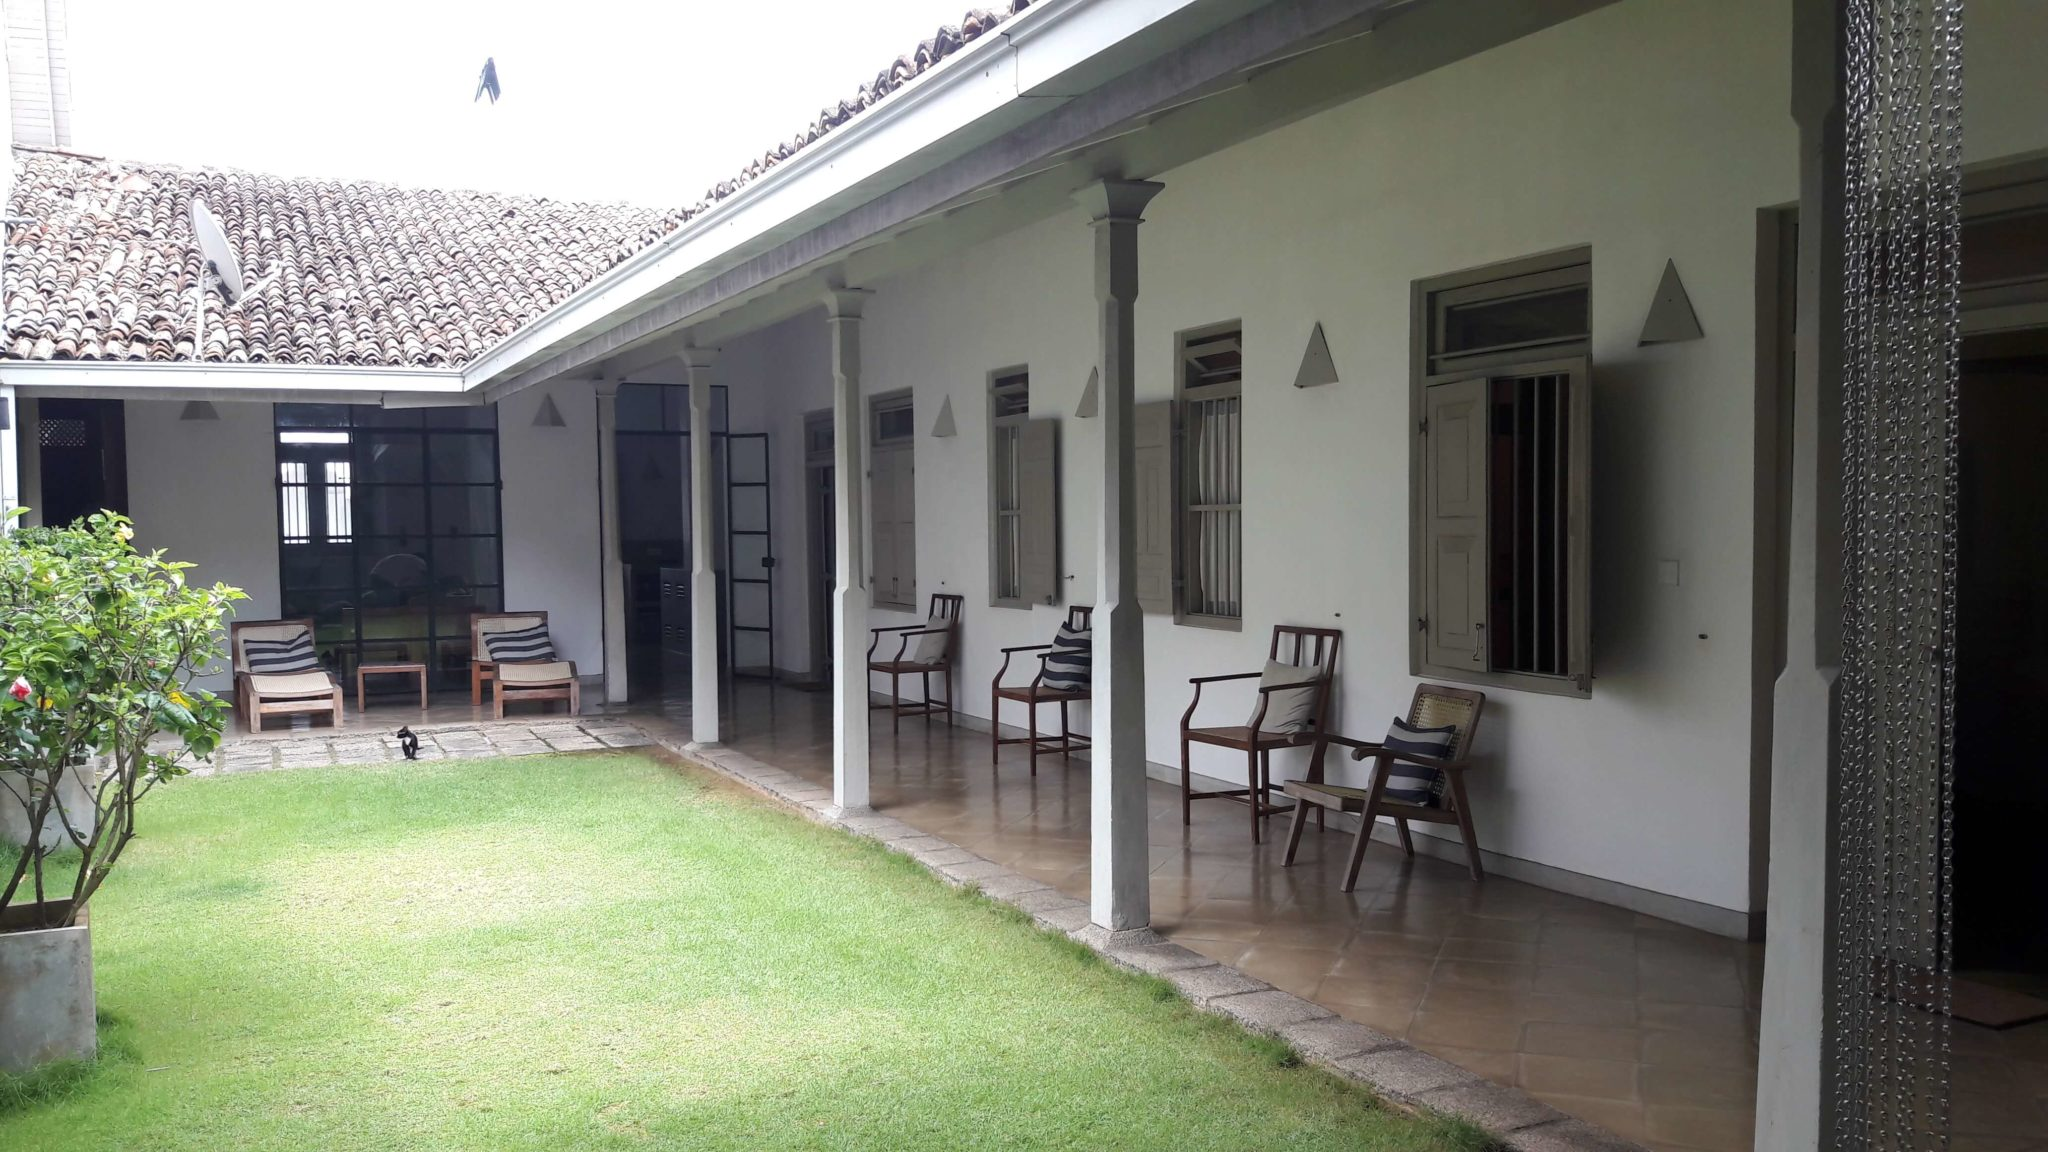 Two Bedroom House In Galle Fort Lanka Real Estate